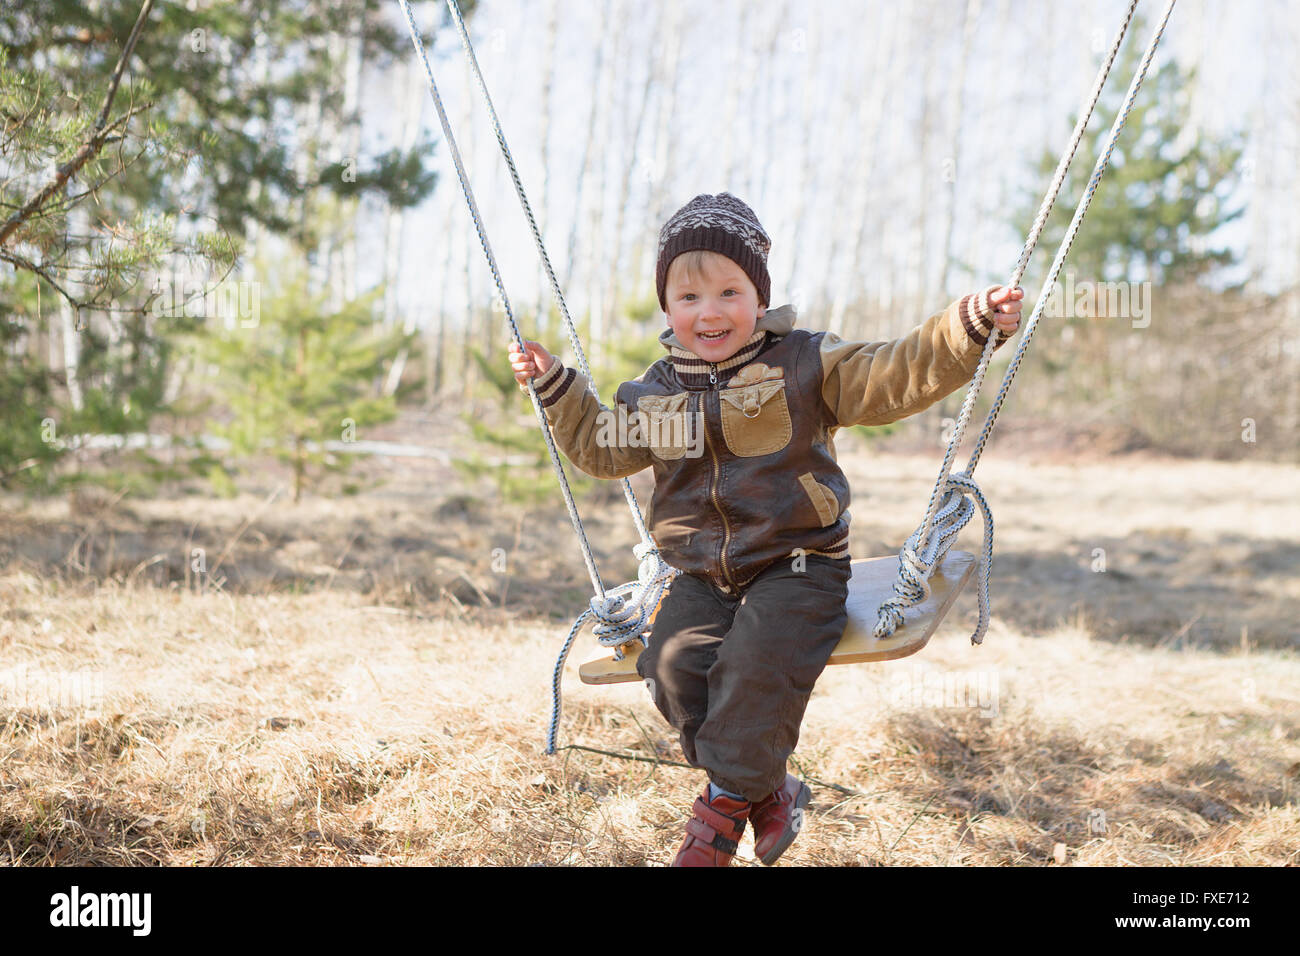 Gomel, Belarus - April 3, 2016: Family in a forest glade ride on a swing. children - Stock Image